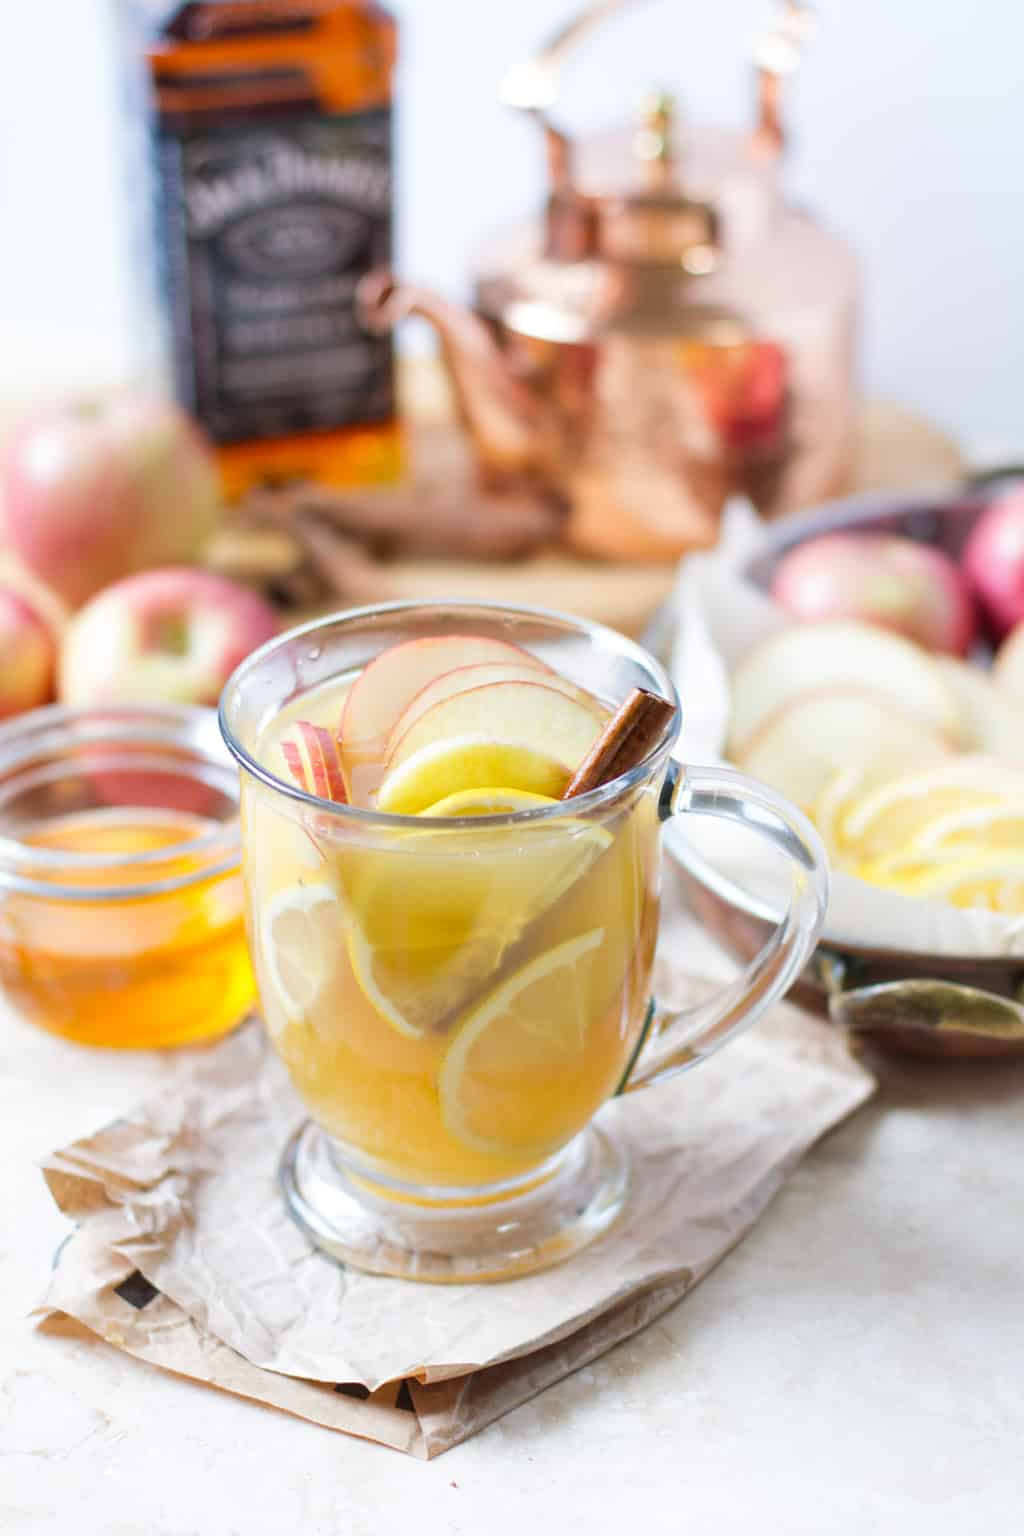 Portrait image of hot zaddy cocktail in glass mug with apple and lemon slices and a cinnamon stick. Surrounded by ingredients.